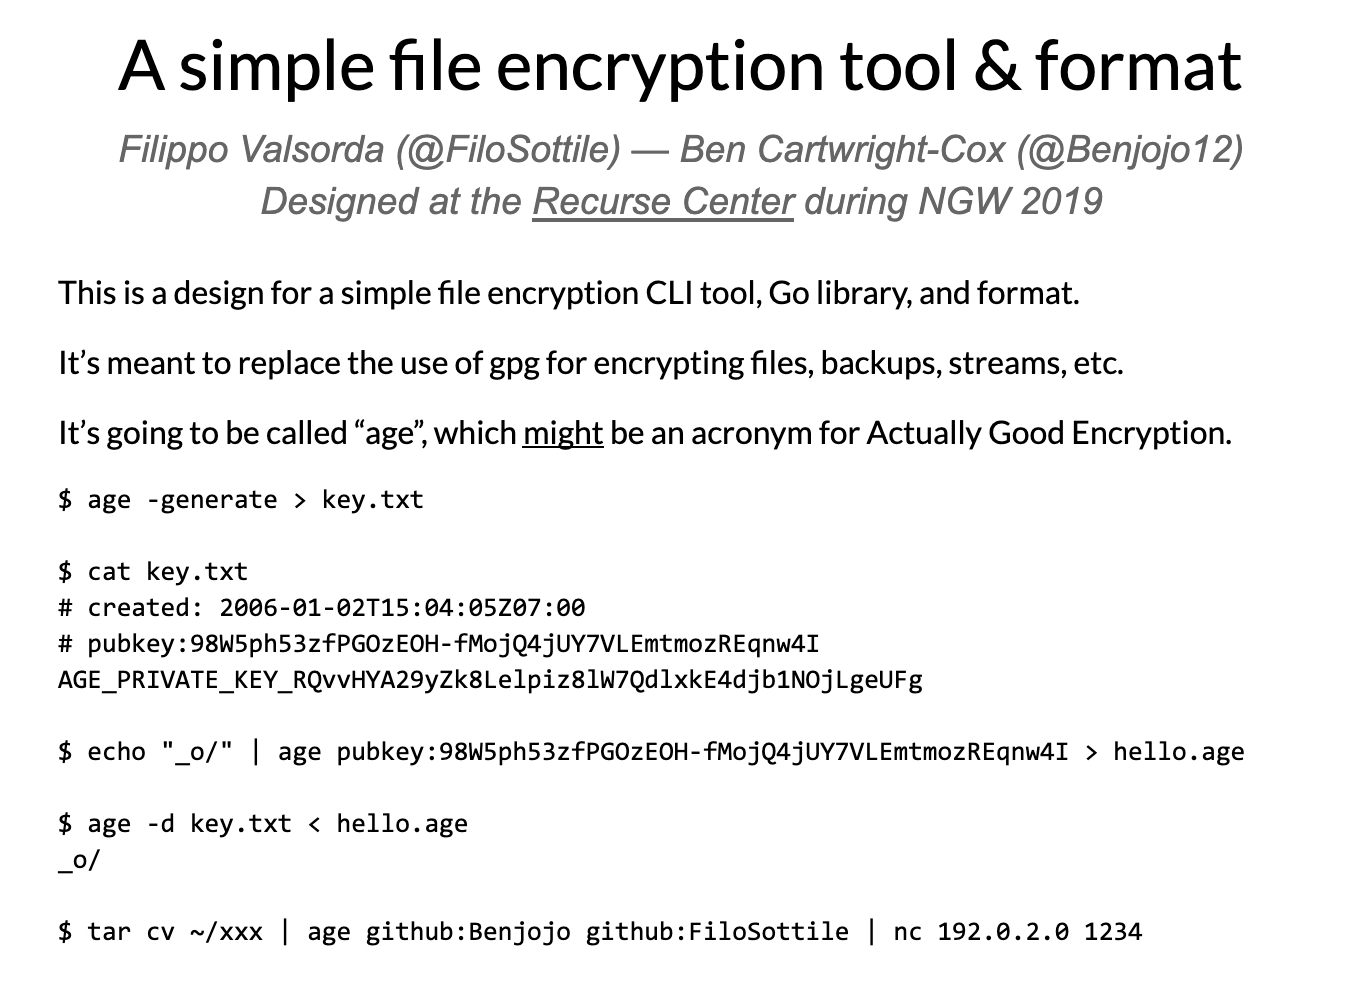 Age specification, a simple file encryption tool & format - Joy of Computing